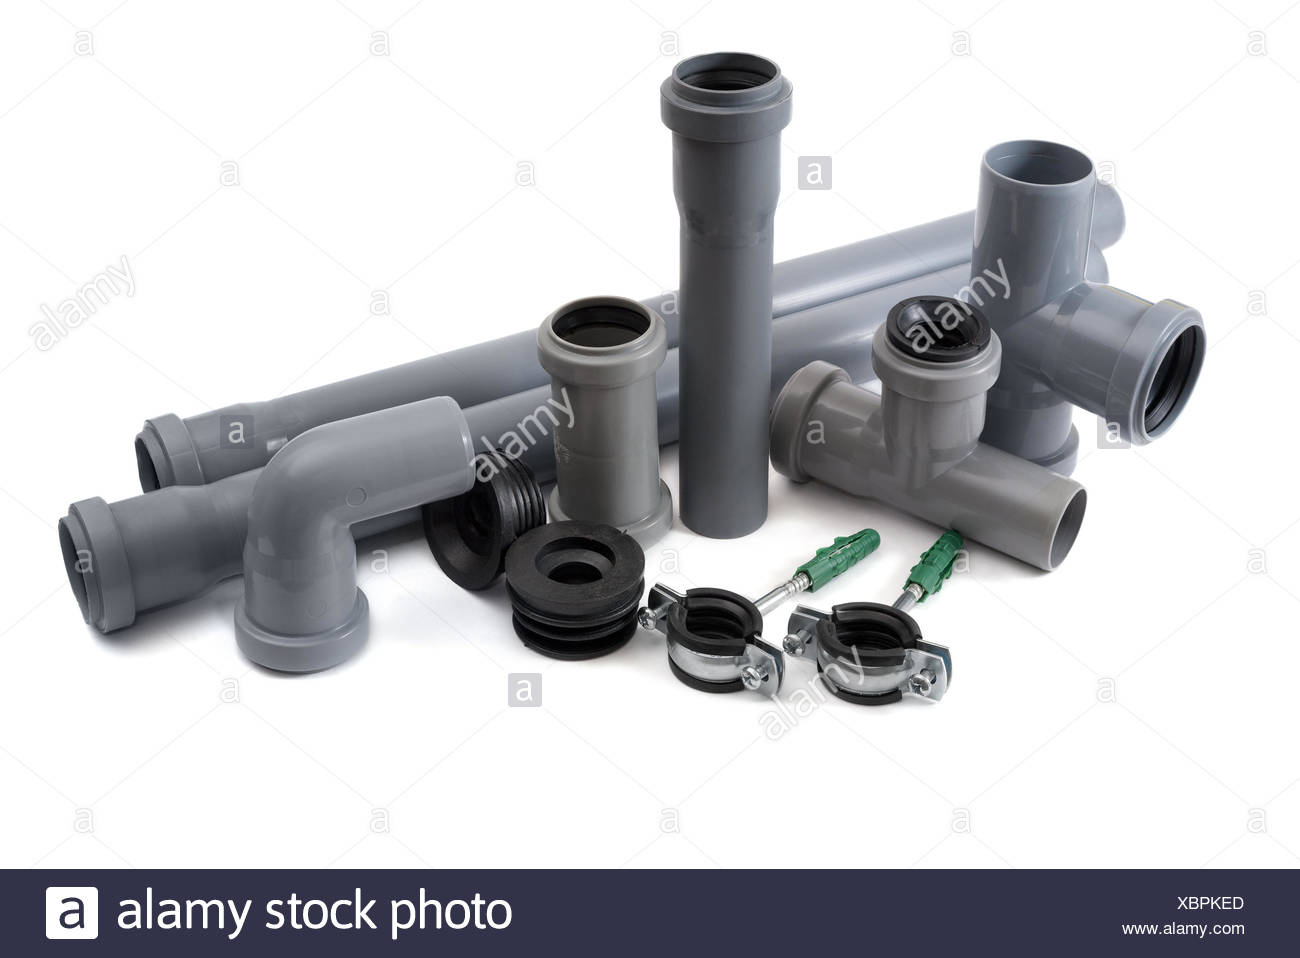 Sewer pipes of pvc - Stock Image